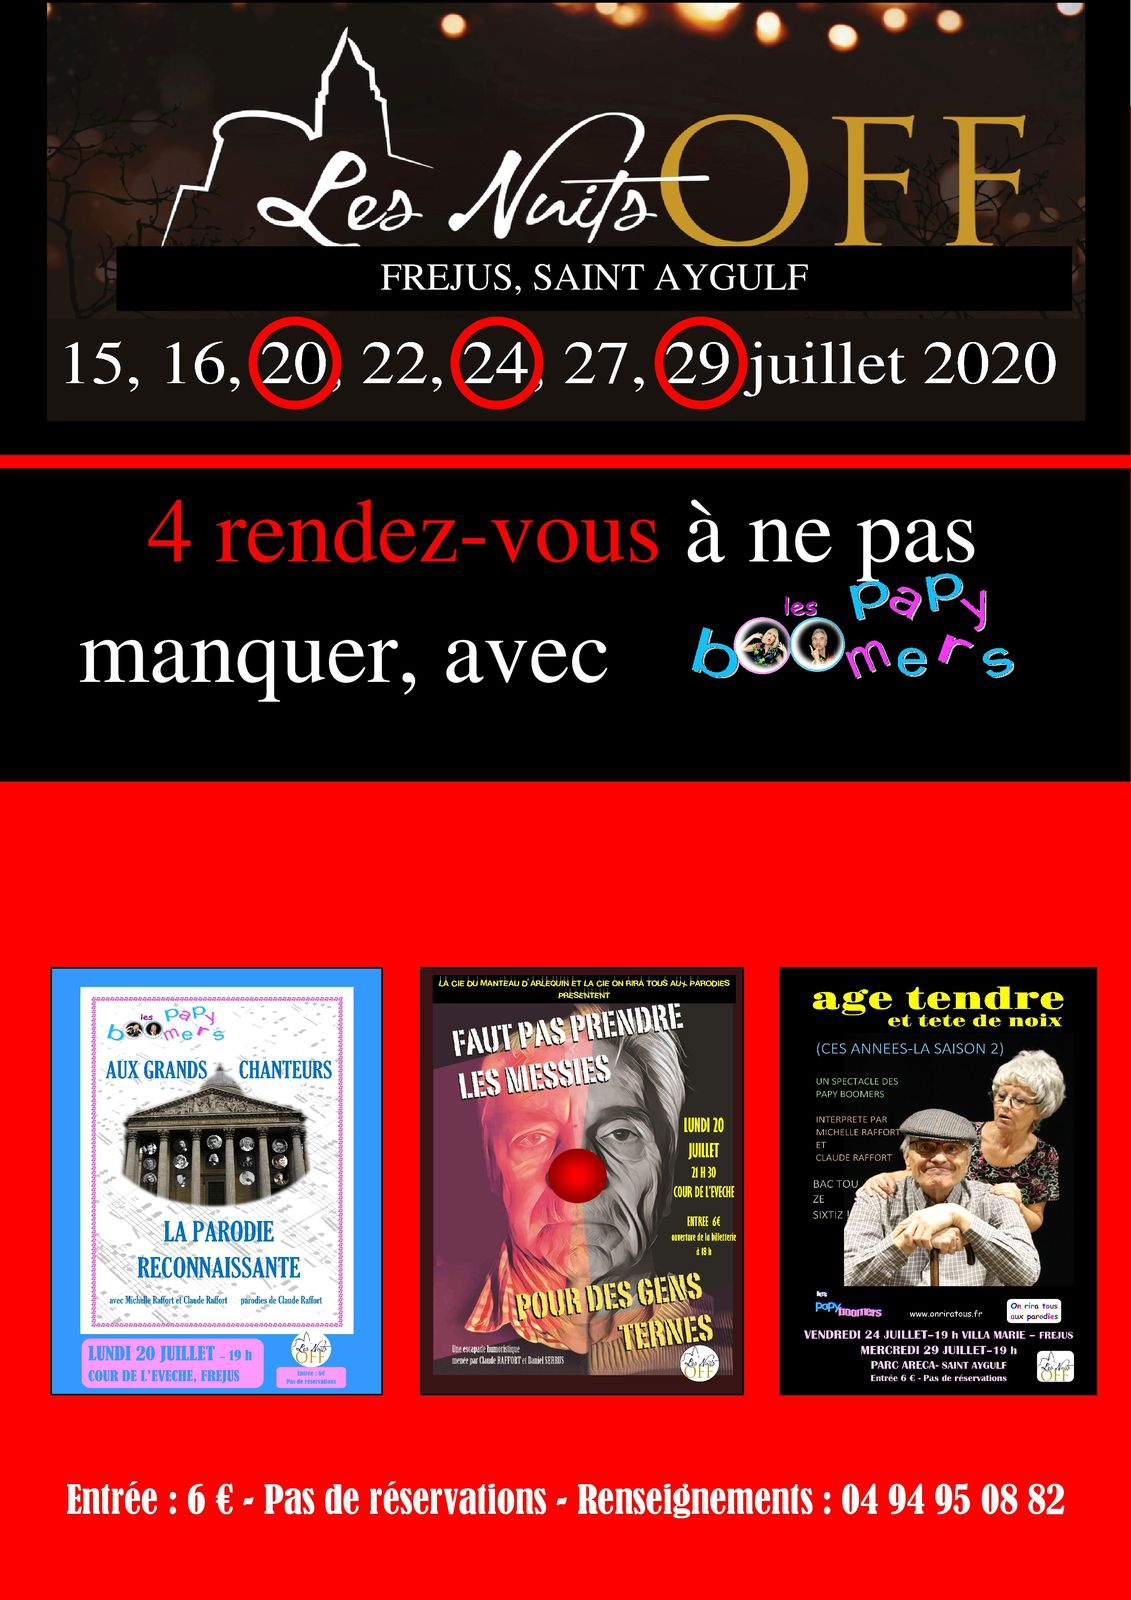 BIENTOT LES NUITS OFF ! LES PAPY BOOMERS REPONDENT PRESENTS